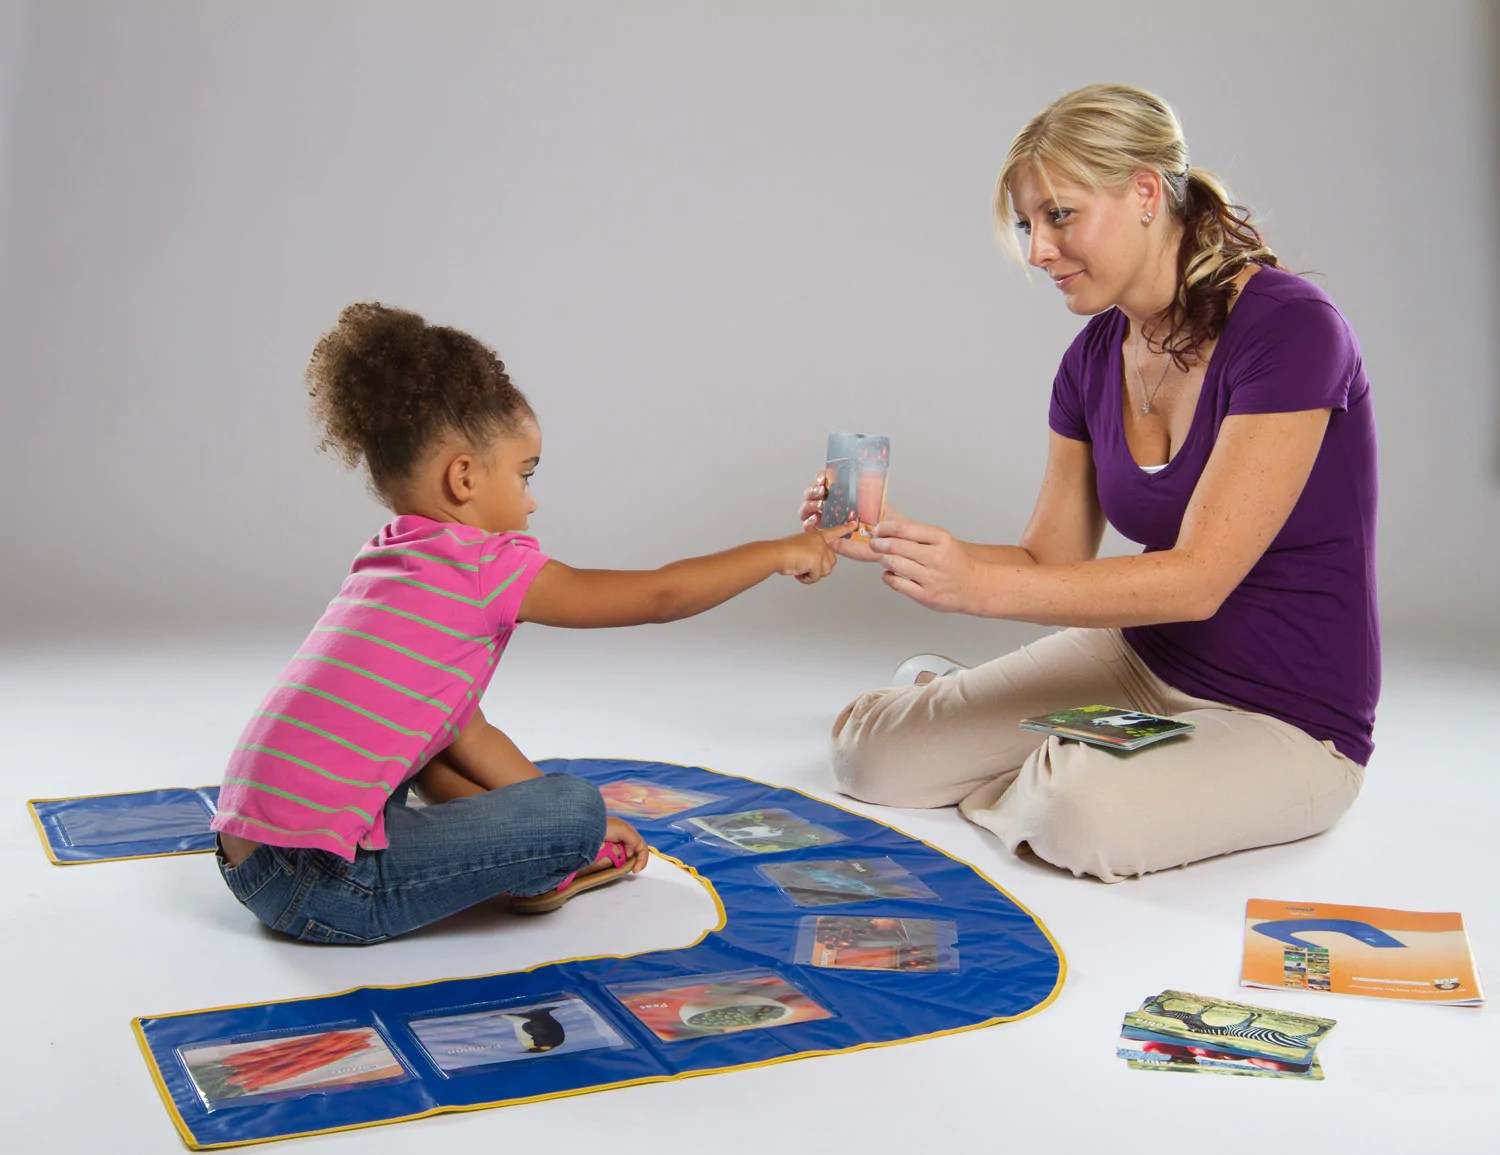 U-play Mat Education Stages Learning Materials